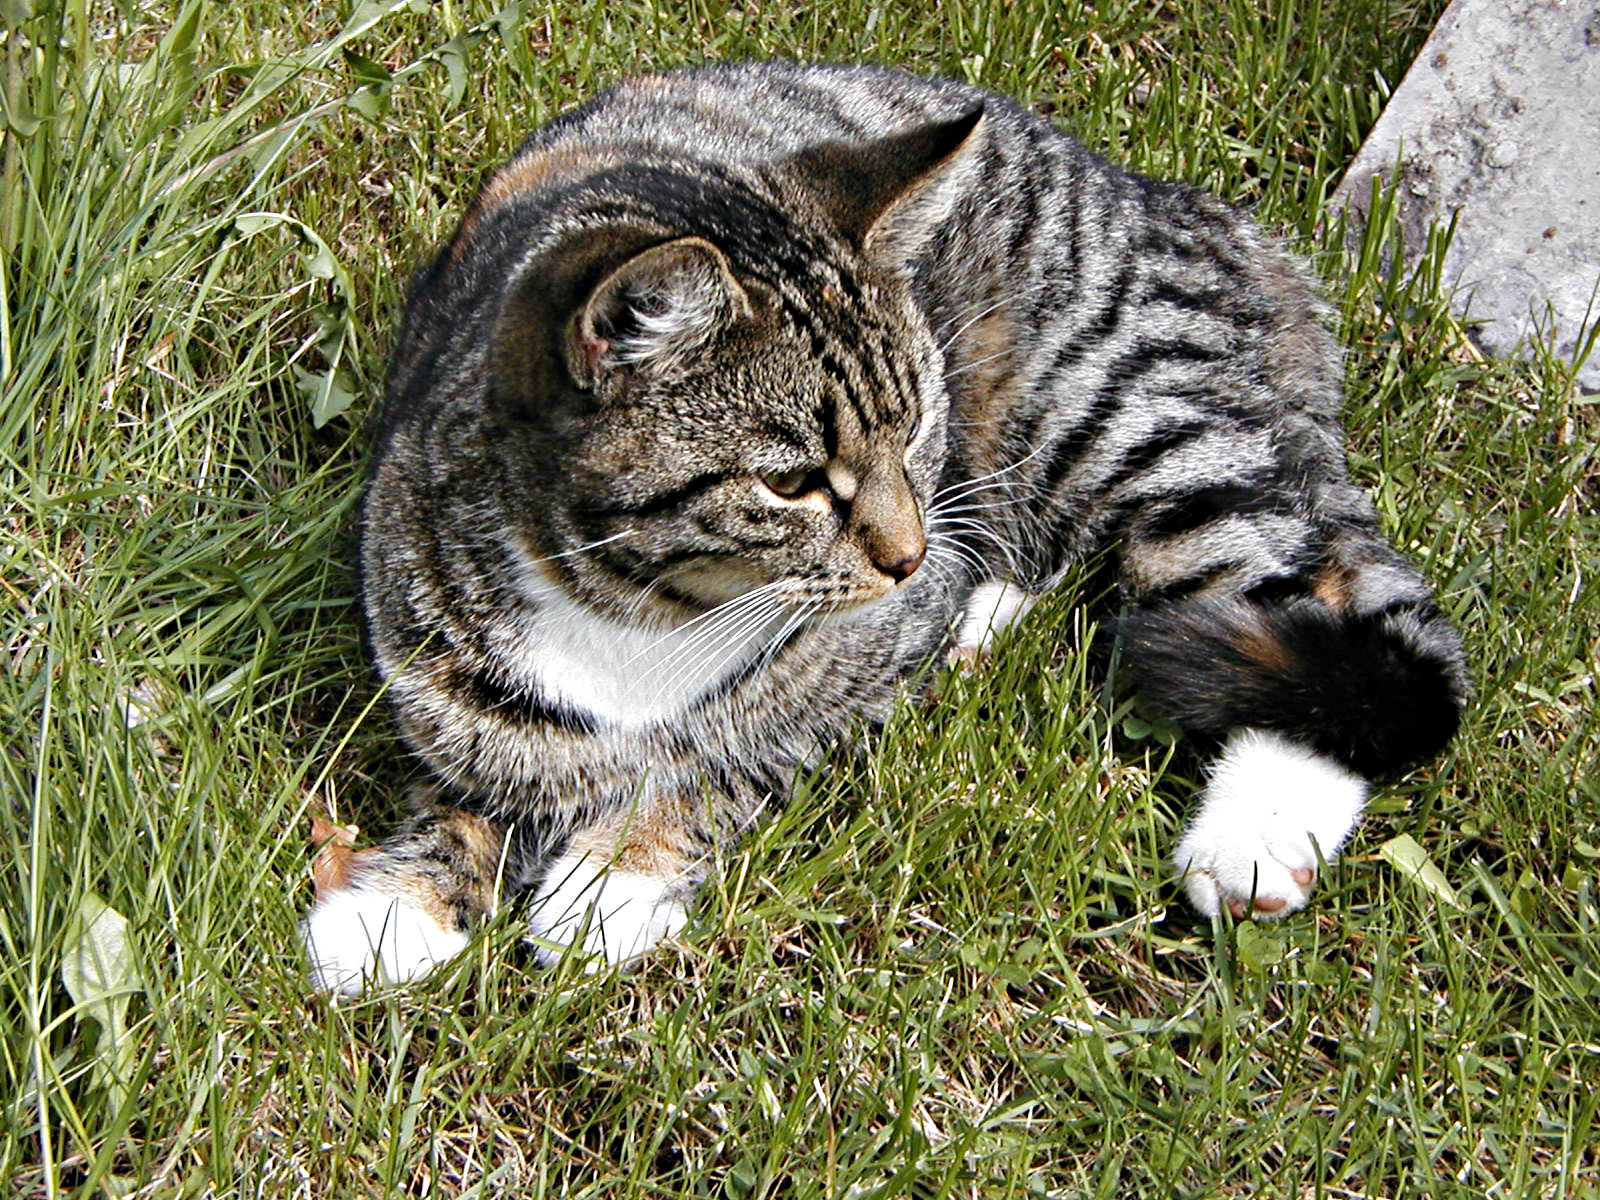 A cat lying in grass photo